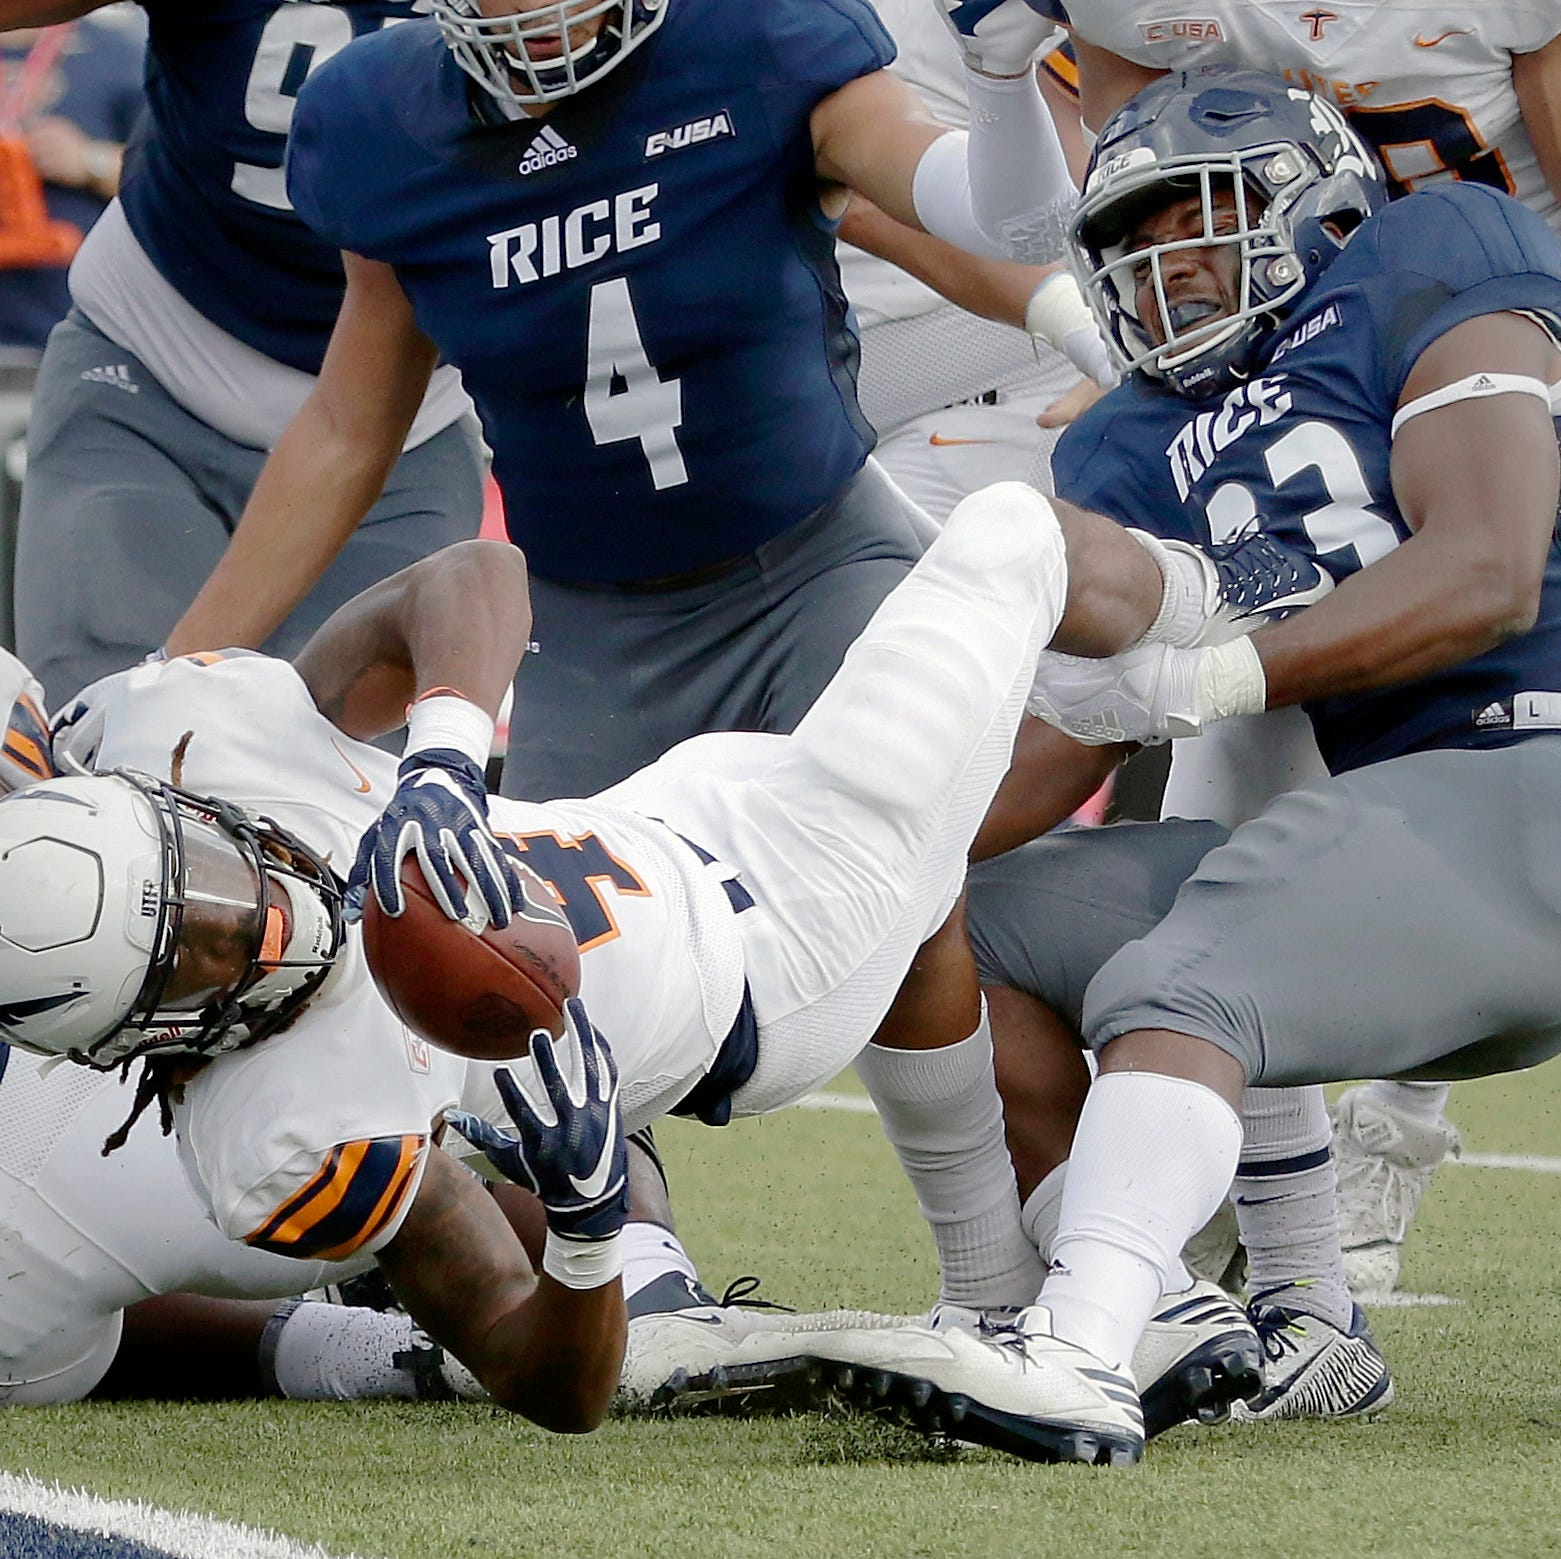 Social media cheers UTEP's victory over Rice, ending nation's longest losing streak